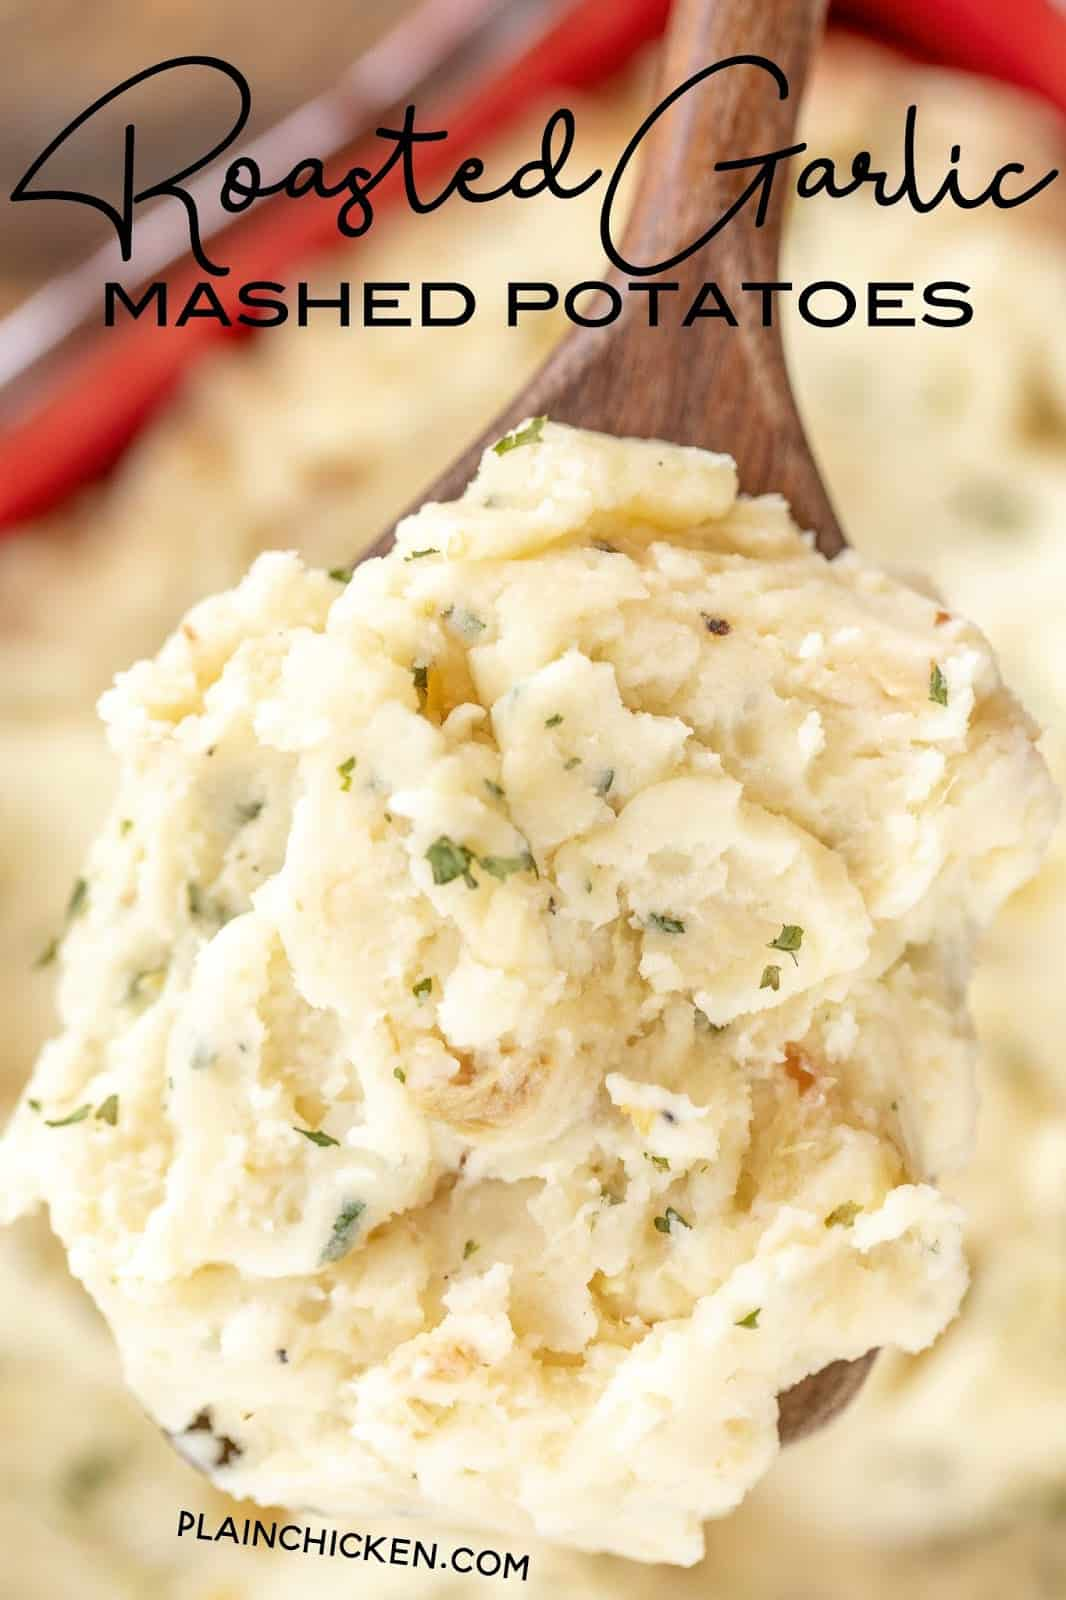 mashed potatoes on a spoon